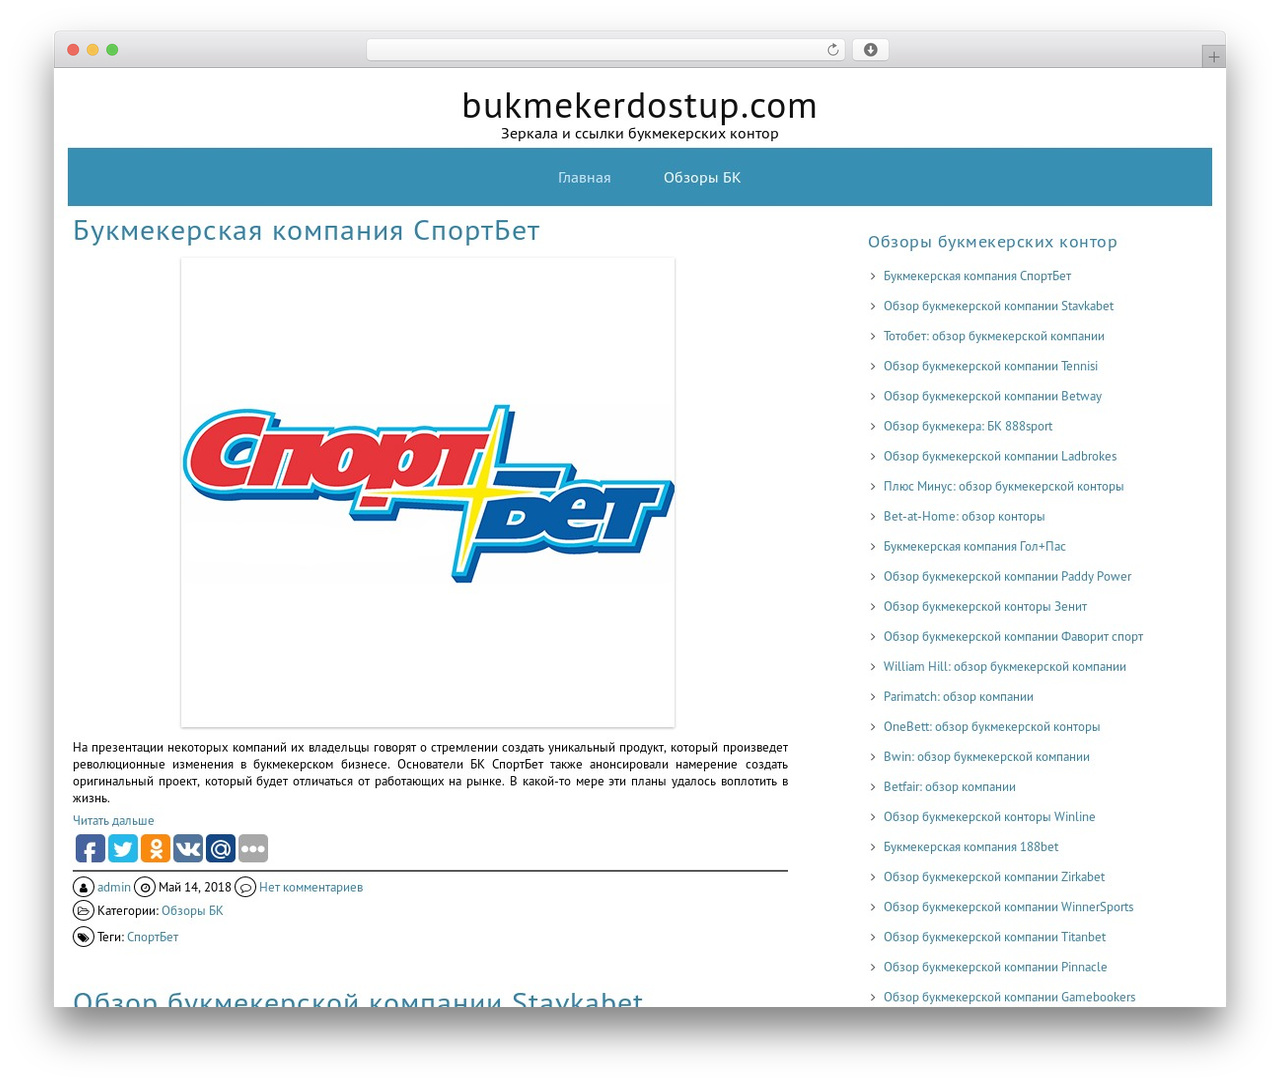 WordPress website template ZenWater - bukmekerdostup.com